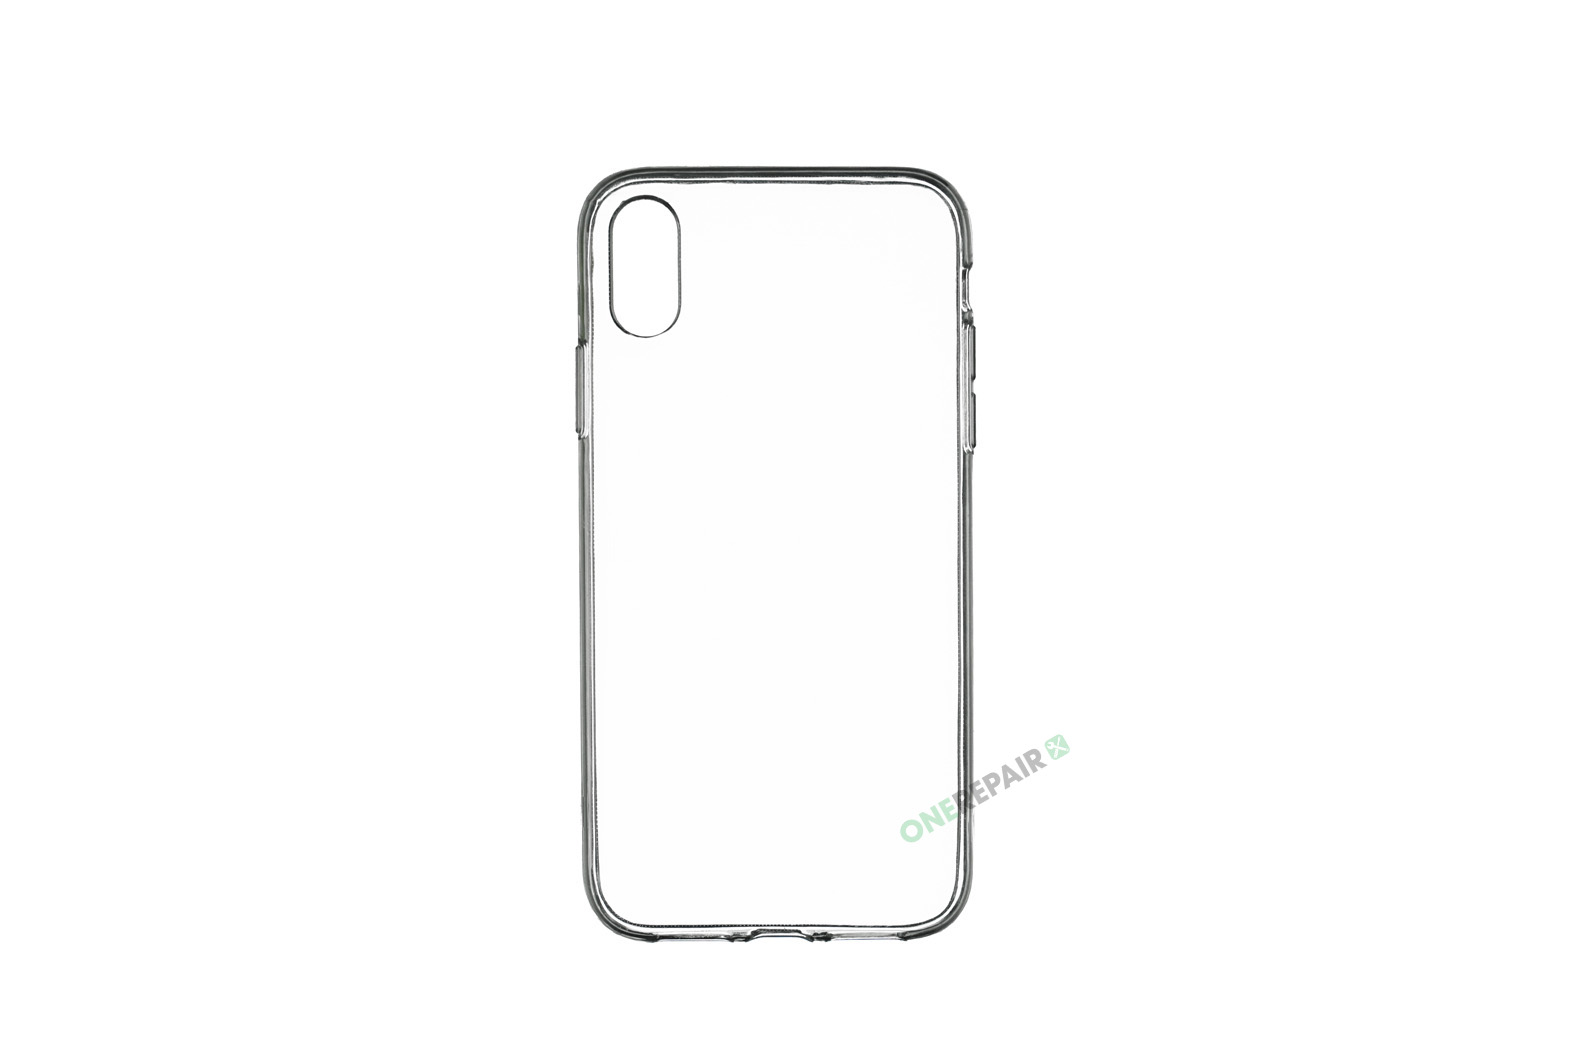 iPhone Xr, A1984, A2105, A2106, A2108, Transparant, Gennemsigtig, Gummicover, Billig, Cover, Bagcover,